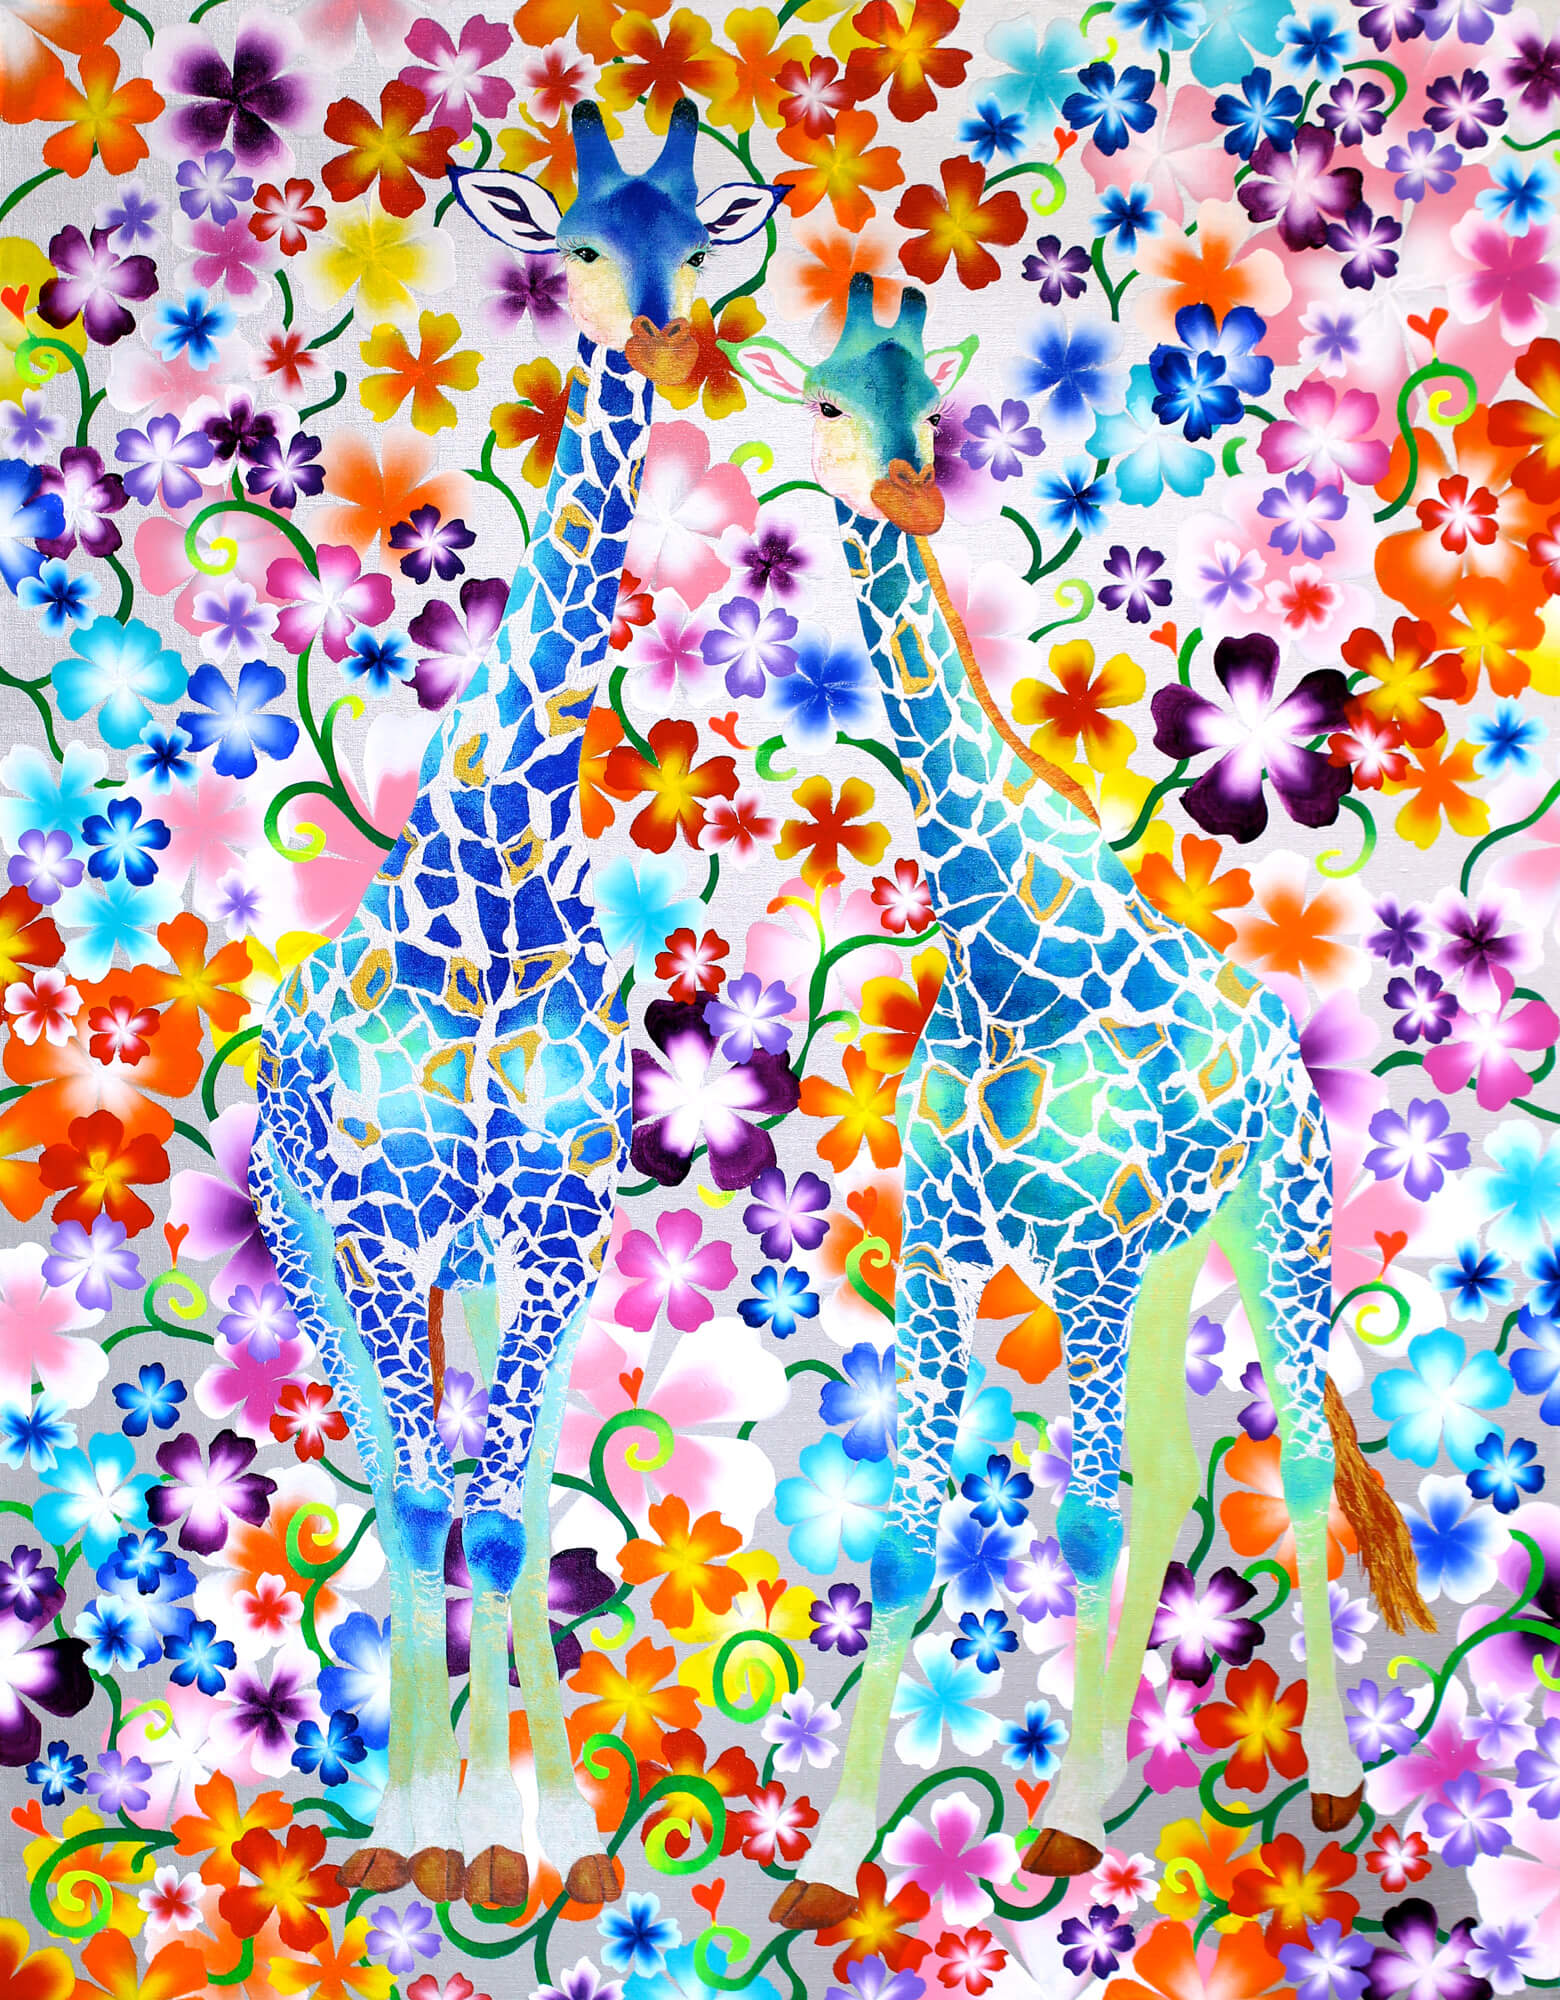 Floral Blue Giraffese改行 Acrylic and glitter on canvas, 1167×910mm, 2013